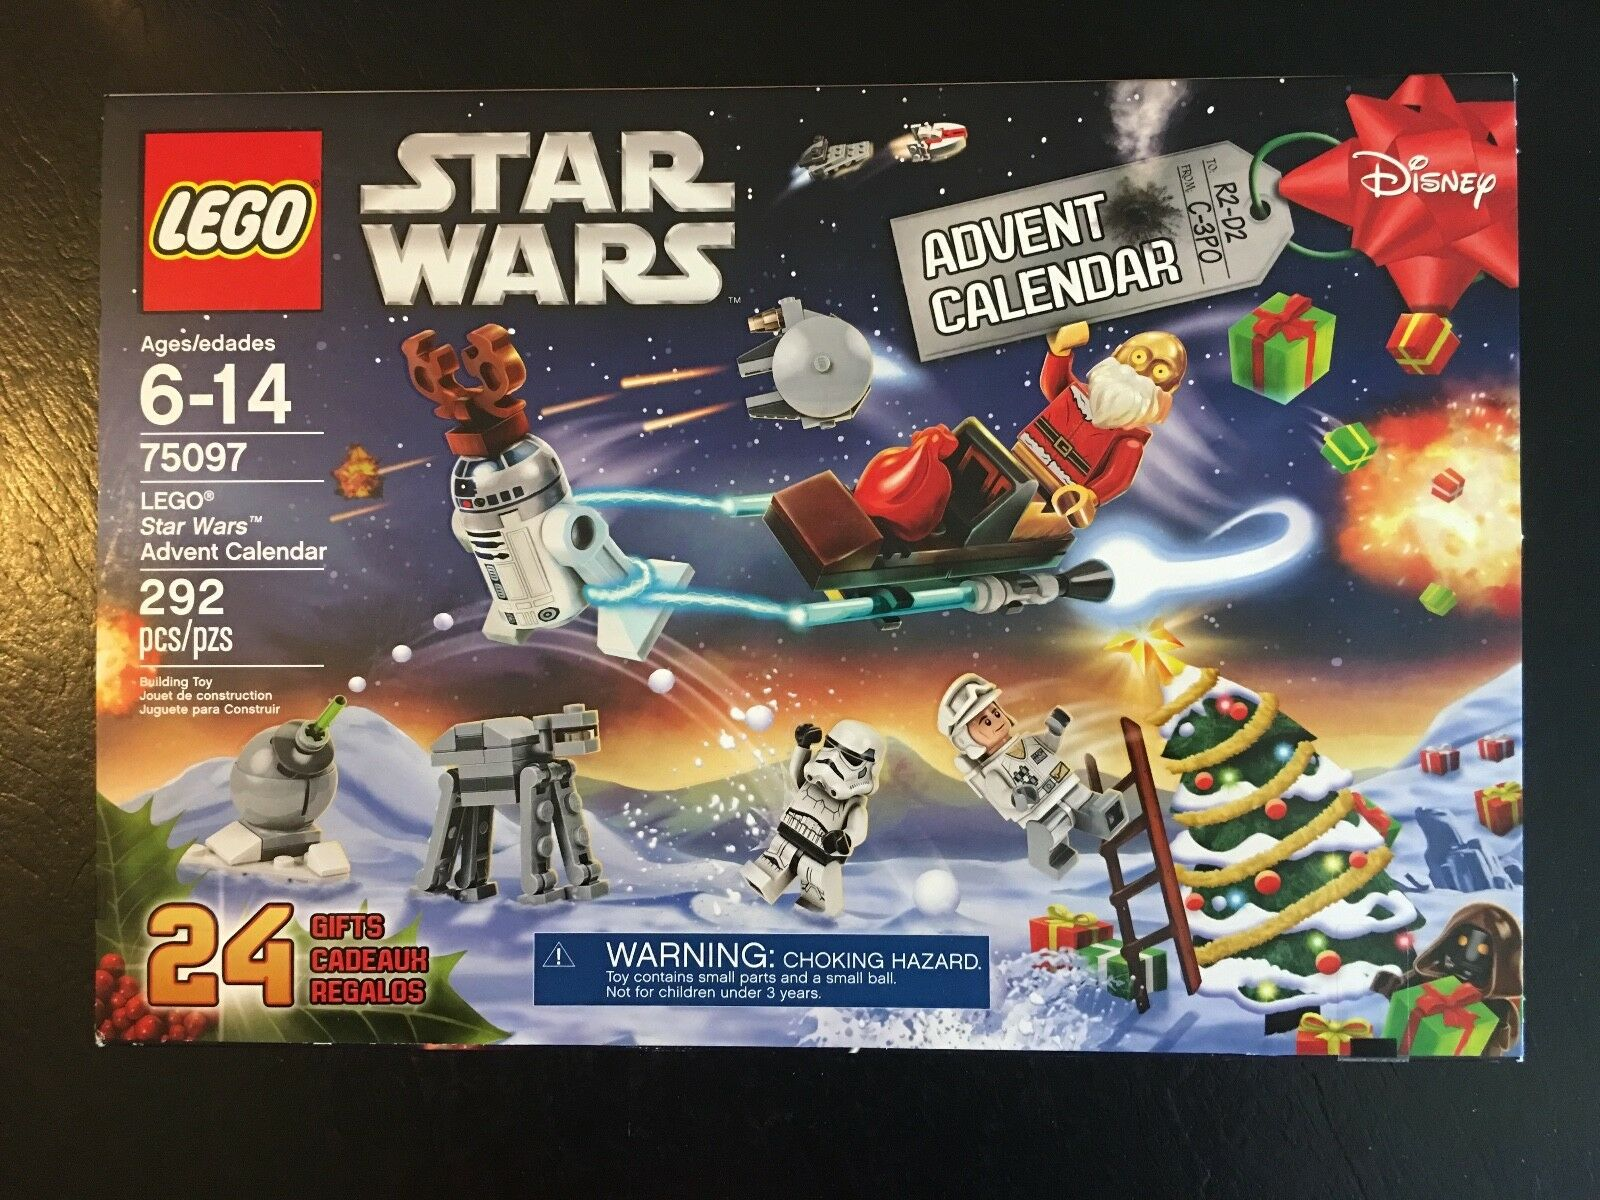 LEGO STAR WARS 75097 75097 75097 2015 Christmas Advent Calendar - FACTORY SEALED - RETIRED 660c54